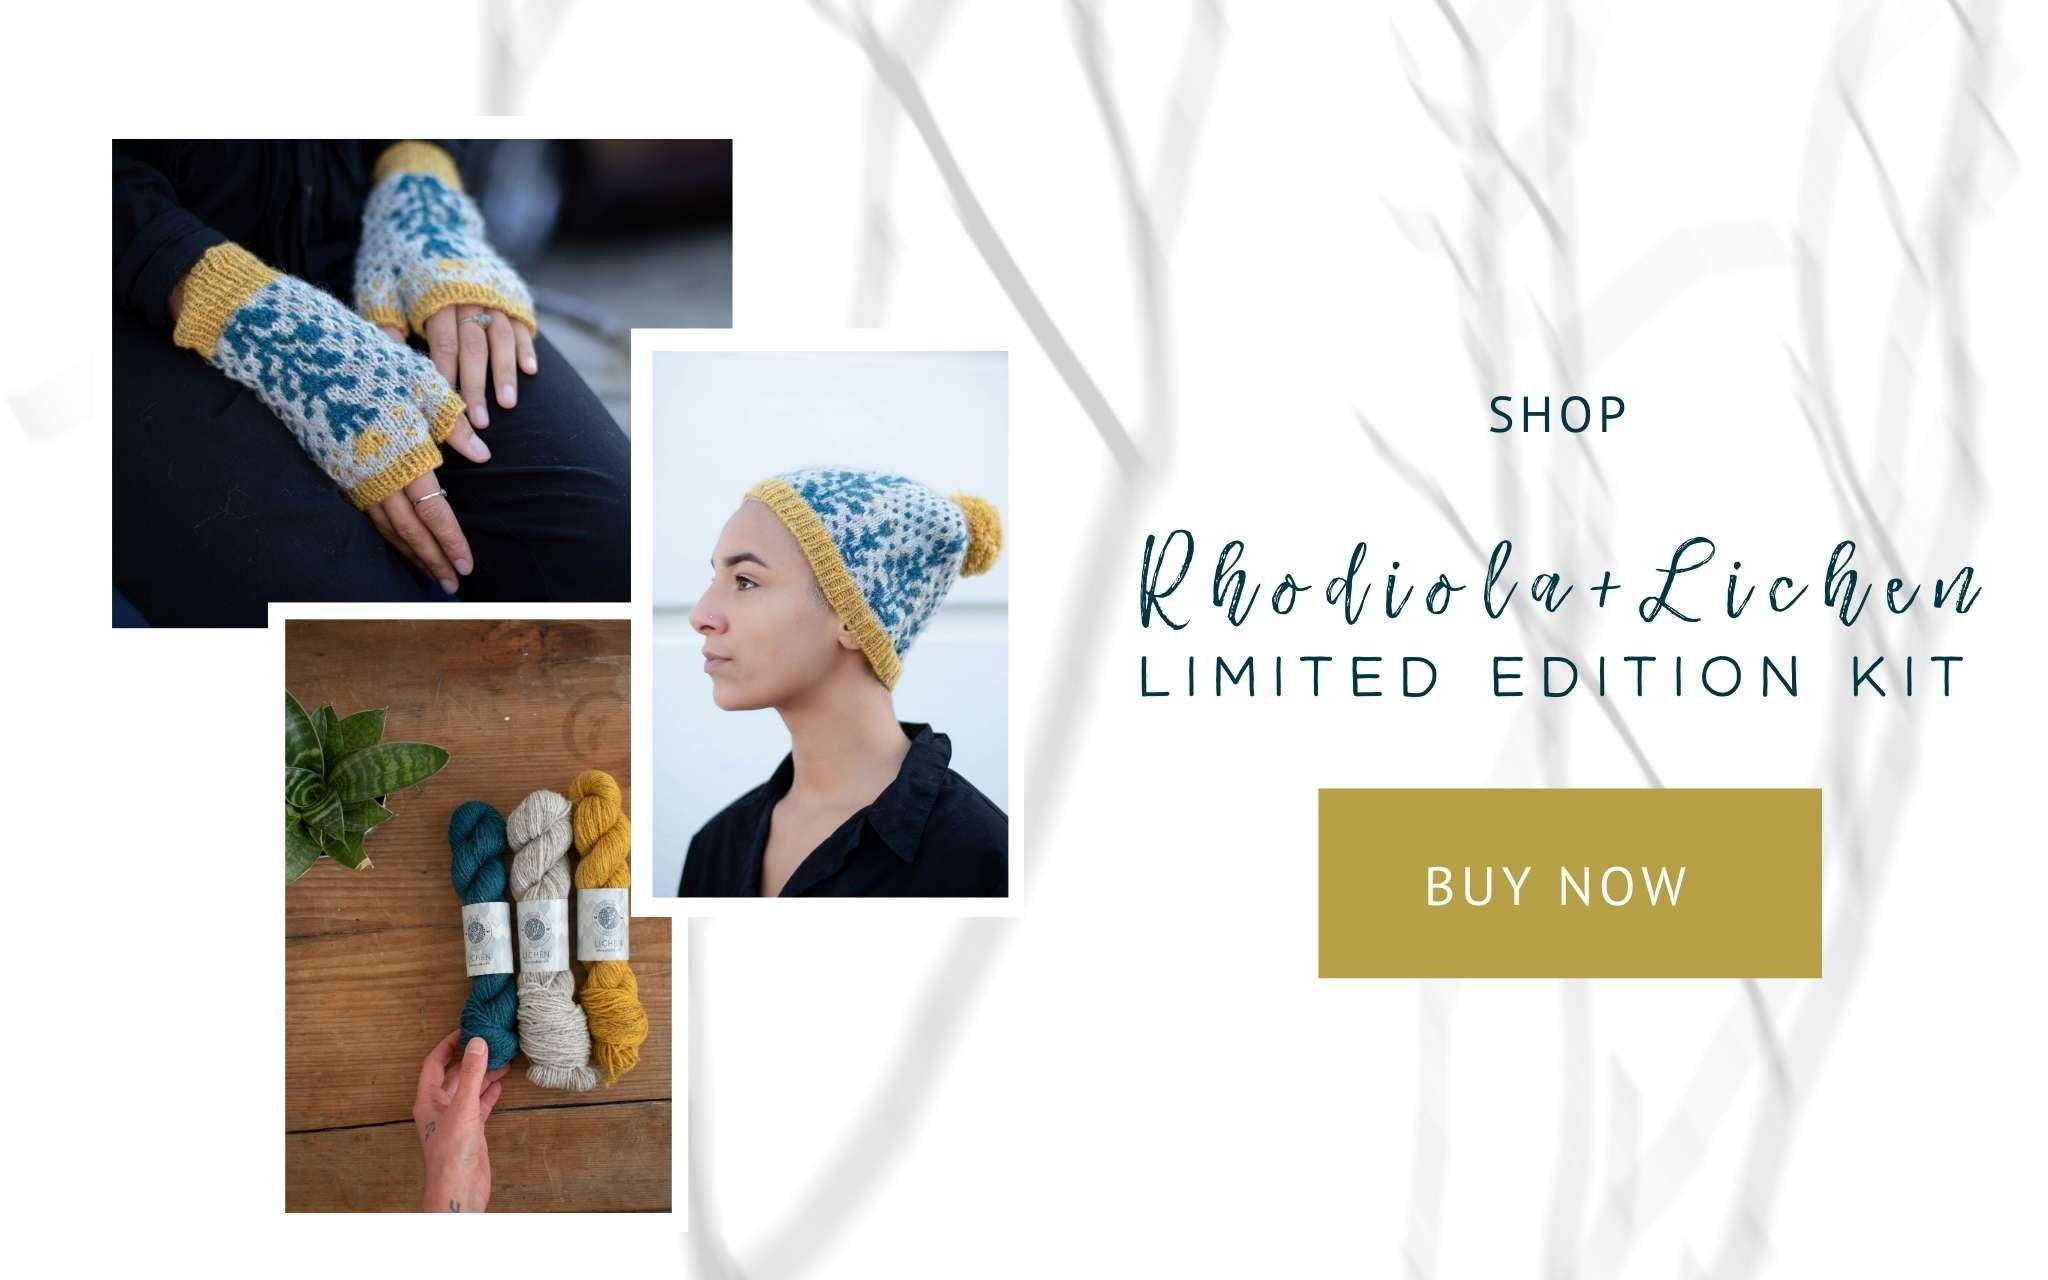 Photos of colourwork mittens, a model wearing a colourwork hat while looking to the side and three skeins of yarn, with a hand reaching into shot to touch one.